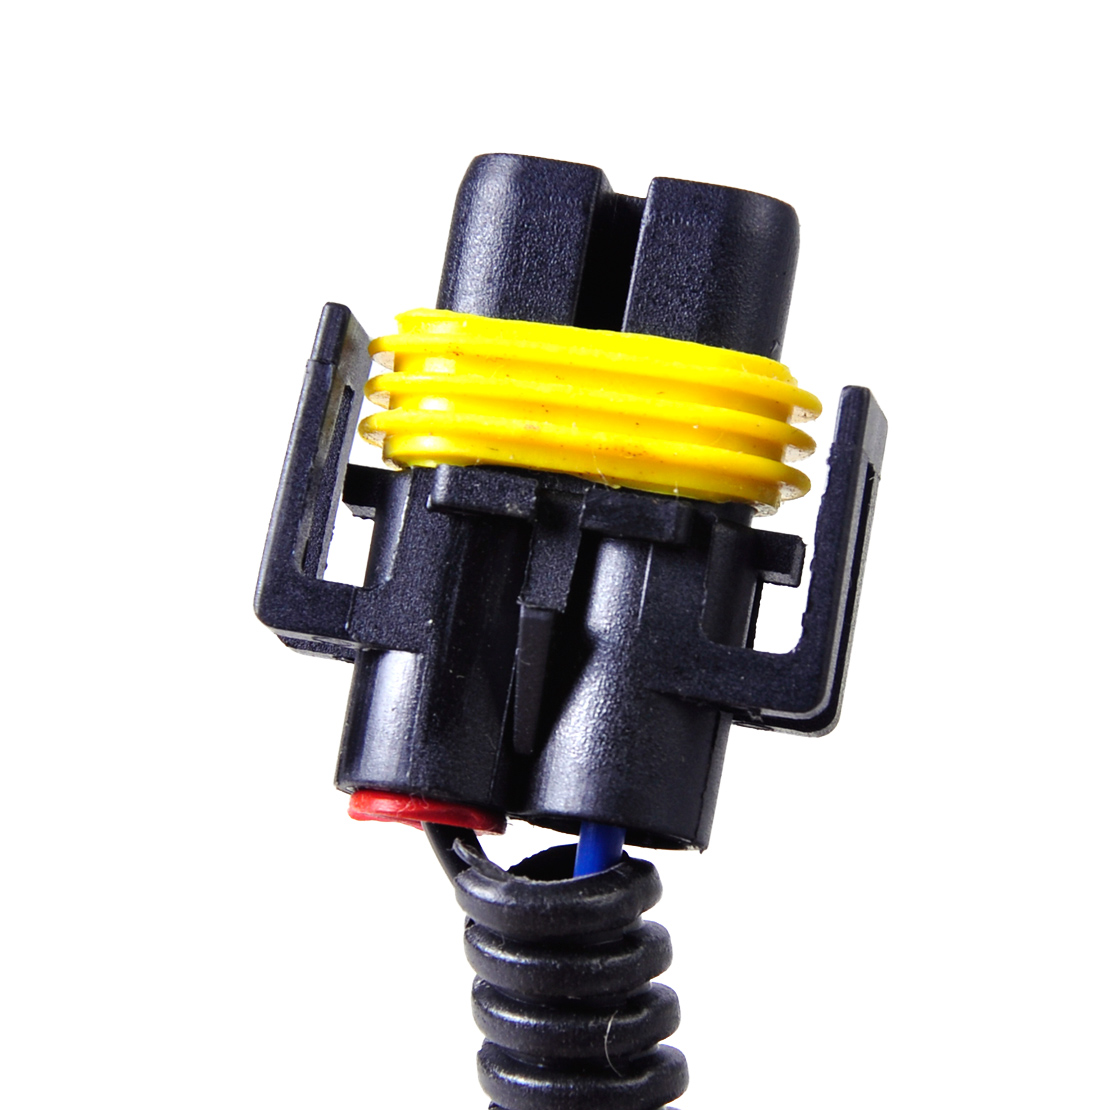 Wiring Harness Sockets Connector For H11 Fog Light Lamp